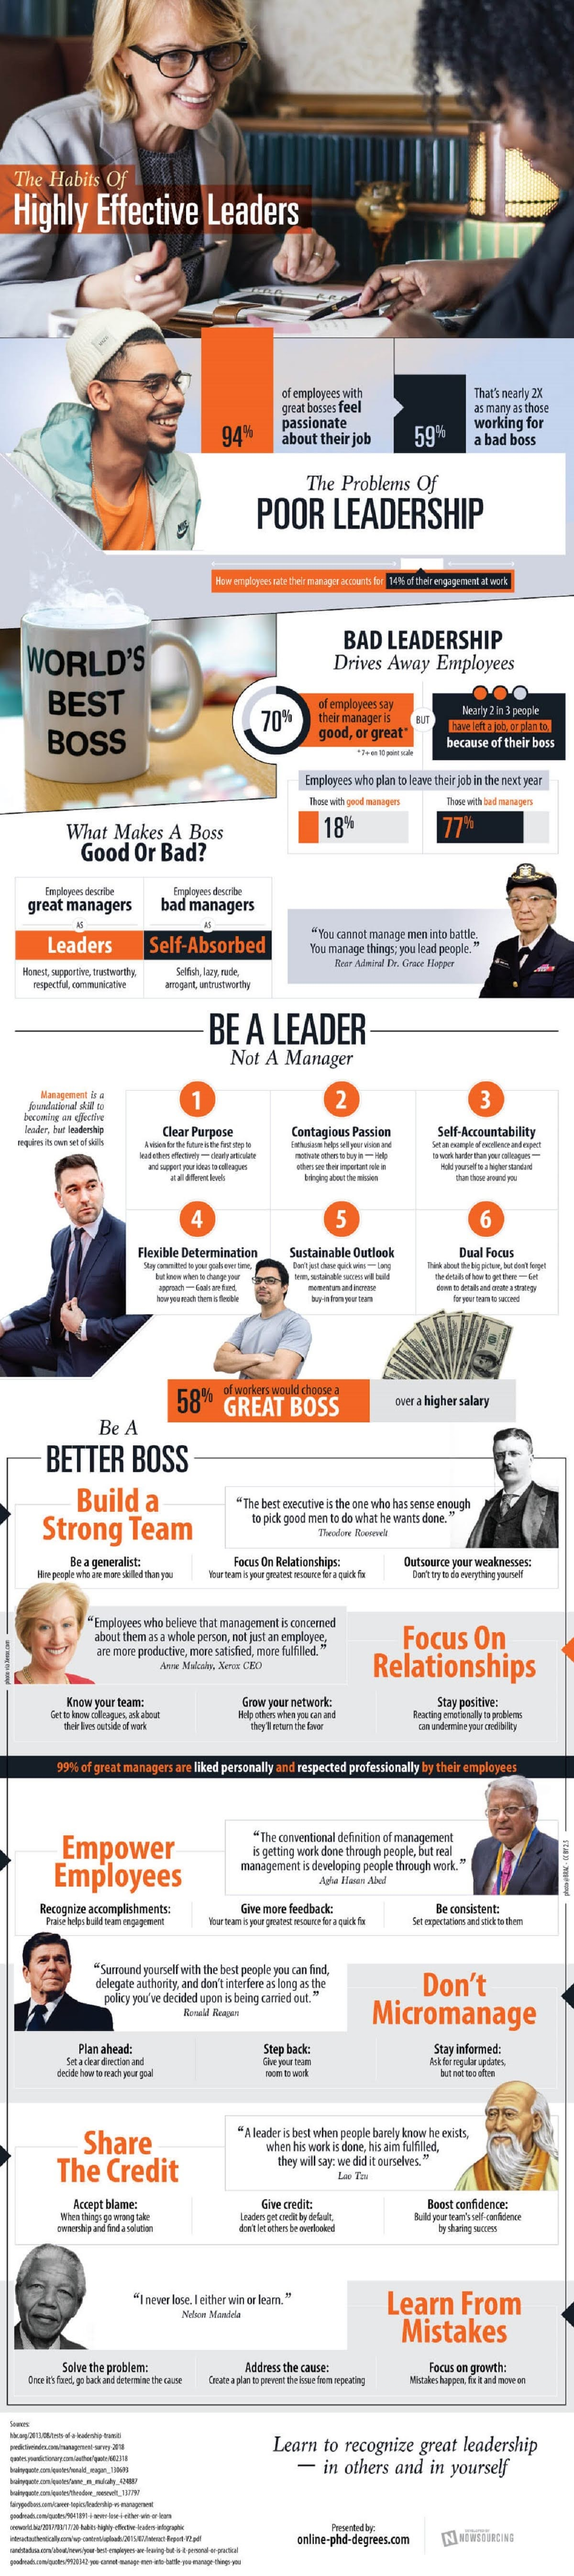 the-habits-of-highly-effective-leaders-infographic